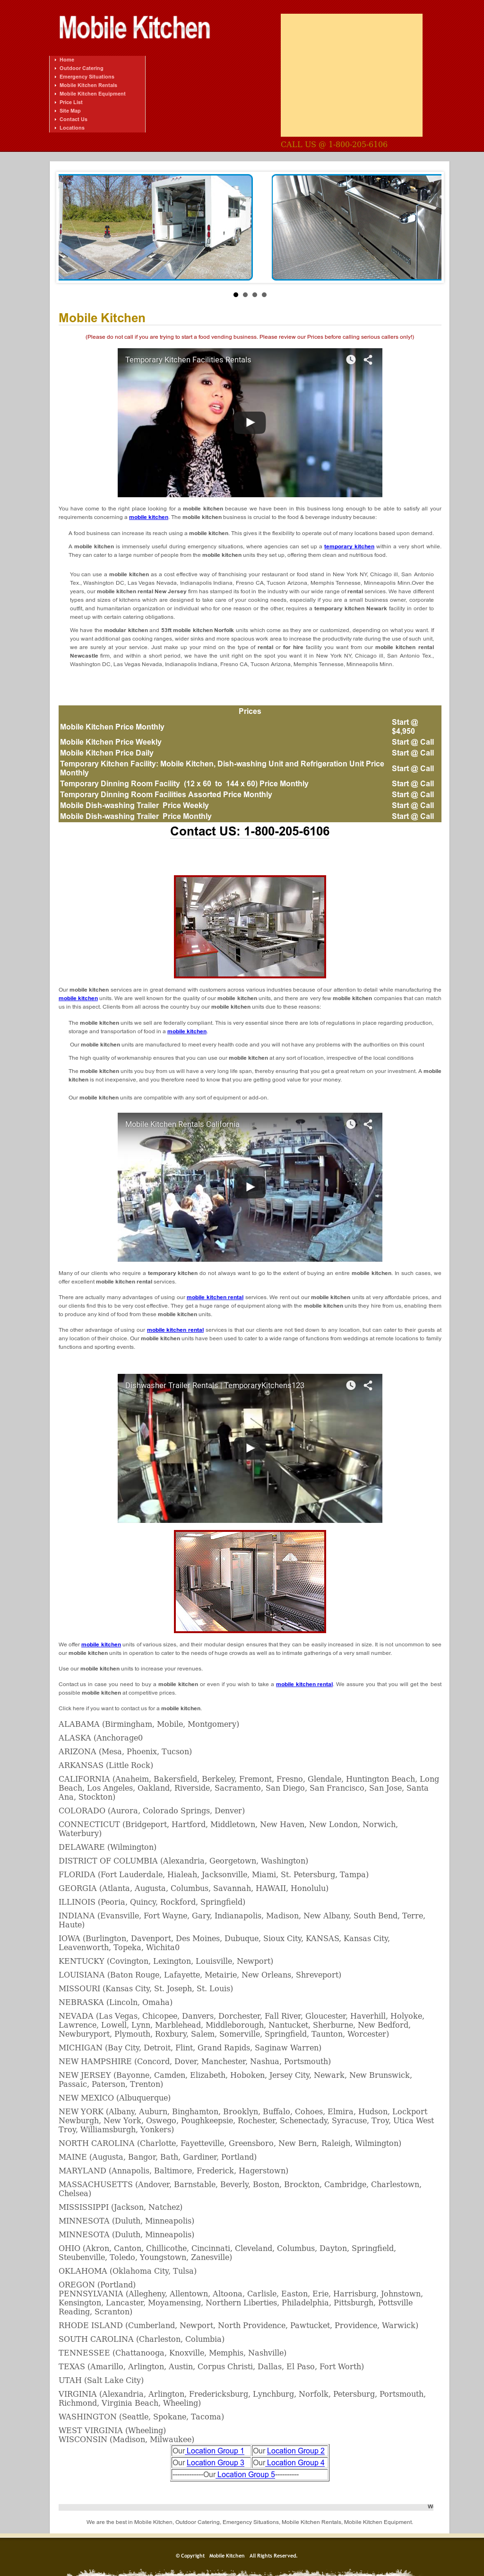 Mobile Kitchen Rental123 Competitors, Revenue and Employees - Owler ...